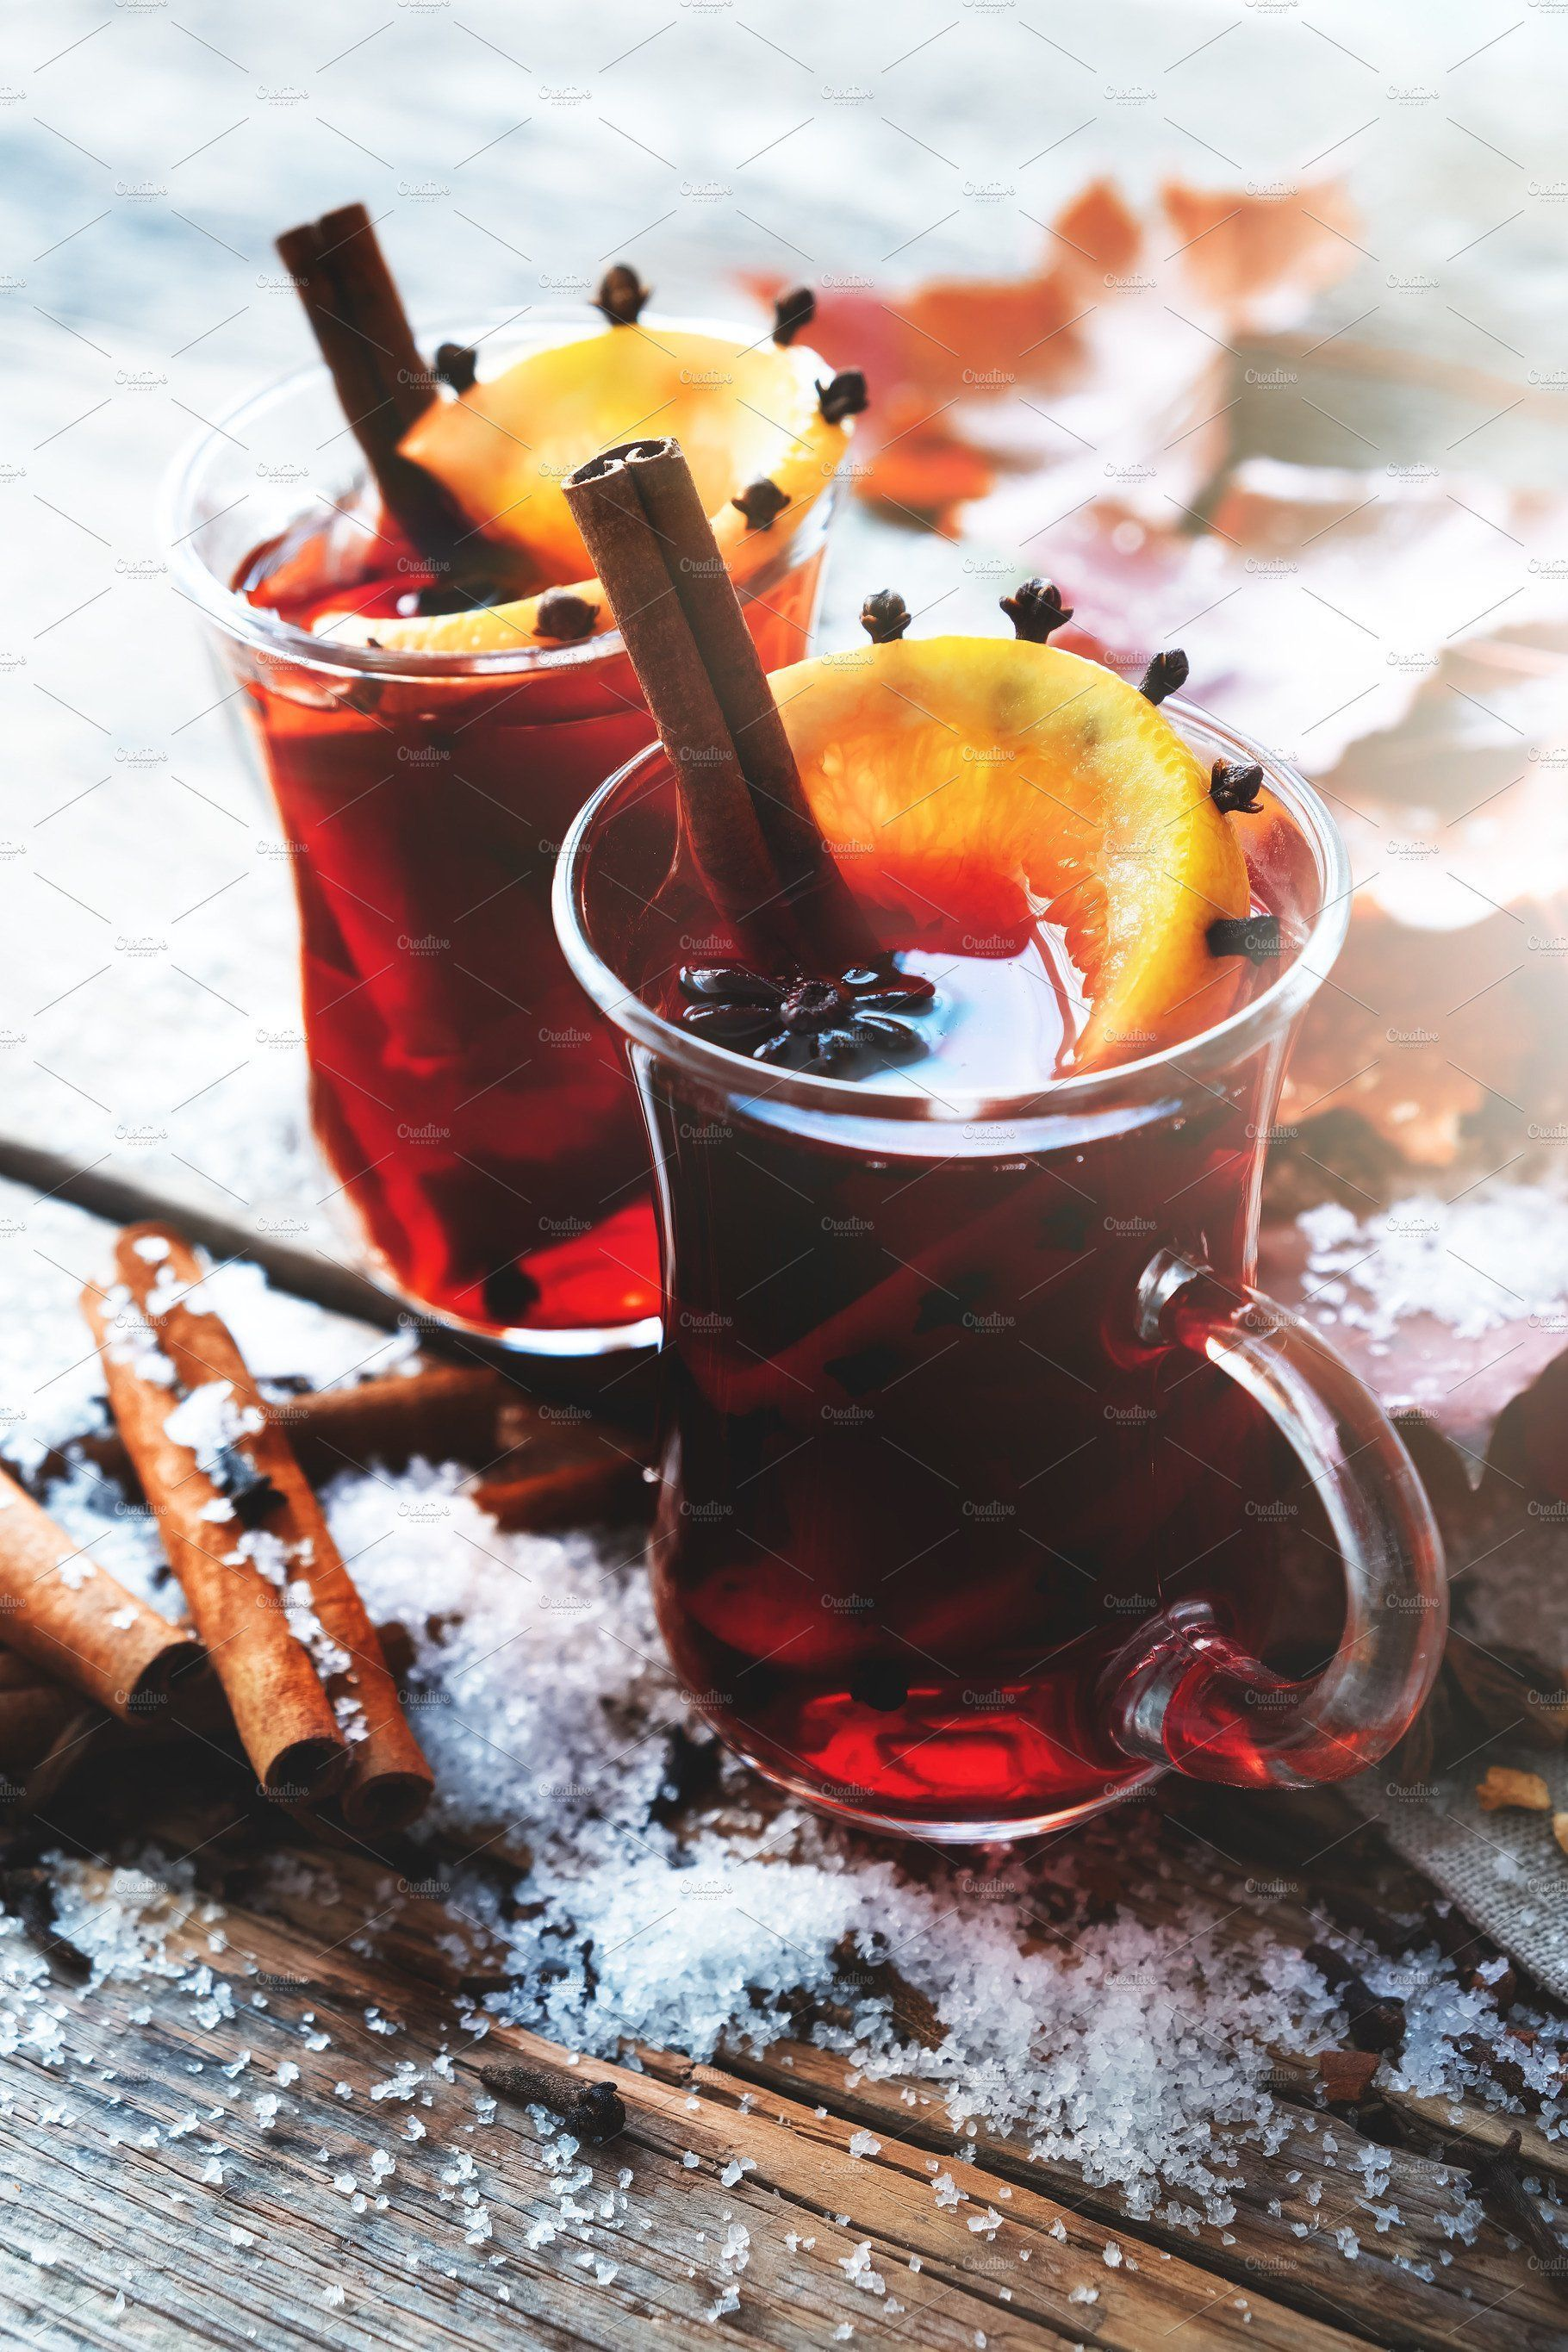 Mulled Wine Autumn Leaves And Snow Glass Mugs Of Mulled Wine With Spices And Citrus Fruits On Wooden Table With Autumn Leaves An Zimnie Napitki Eda Glintvejn